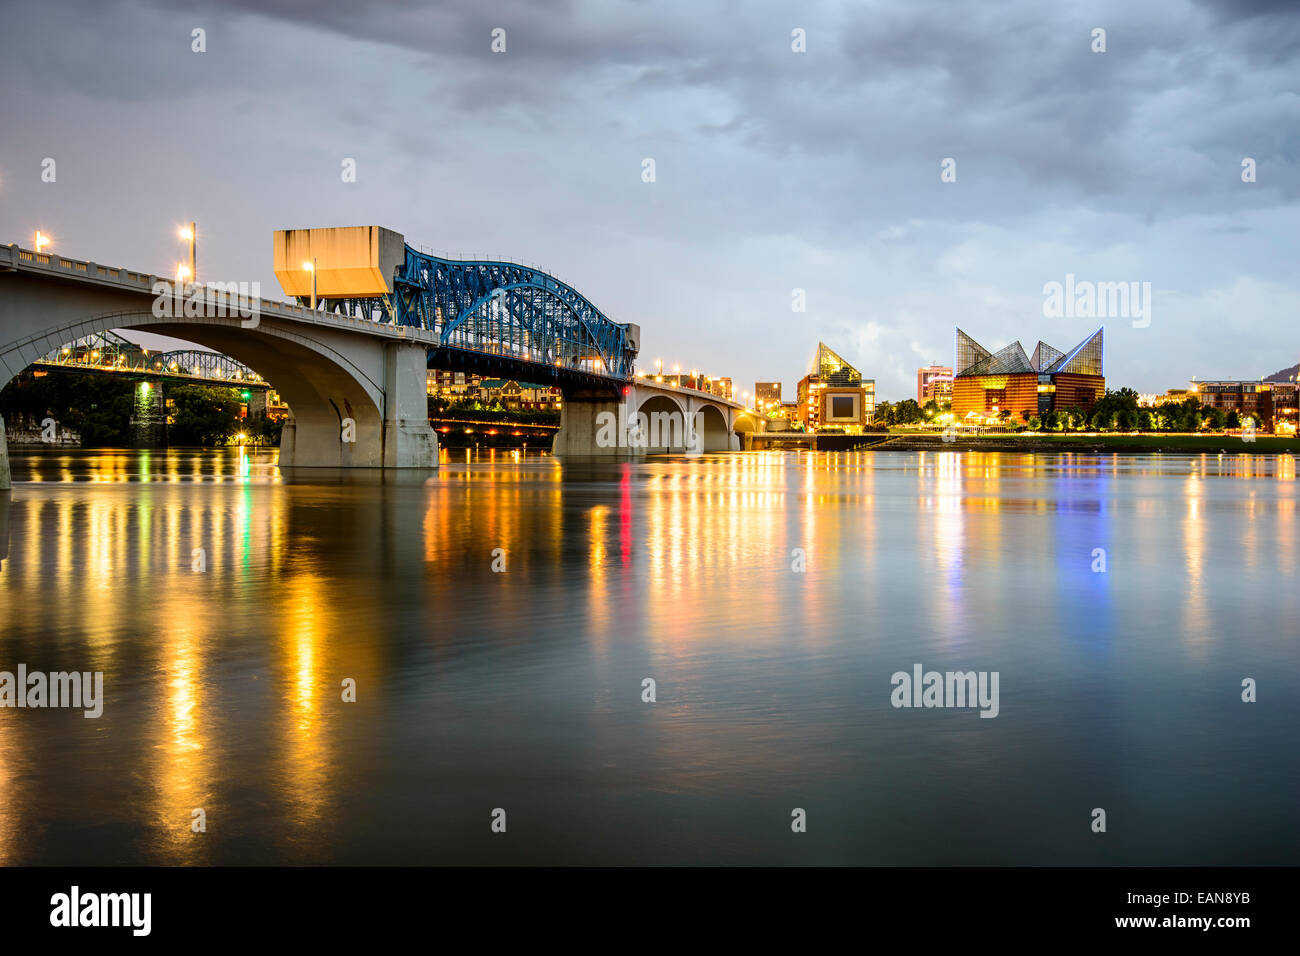 Chattanooga, Tennessee, USA city skyline at dusk. - Stock Image